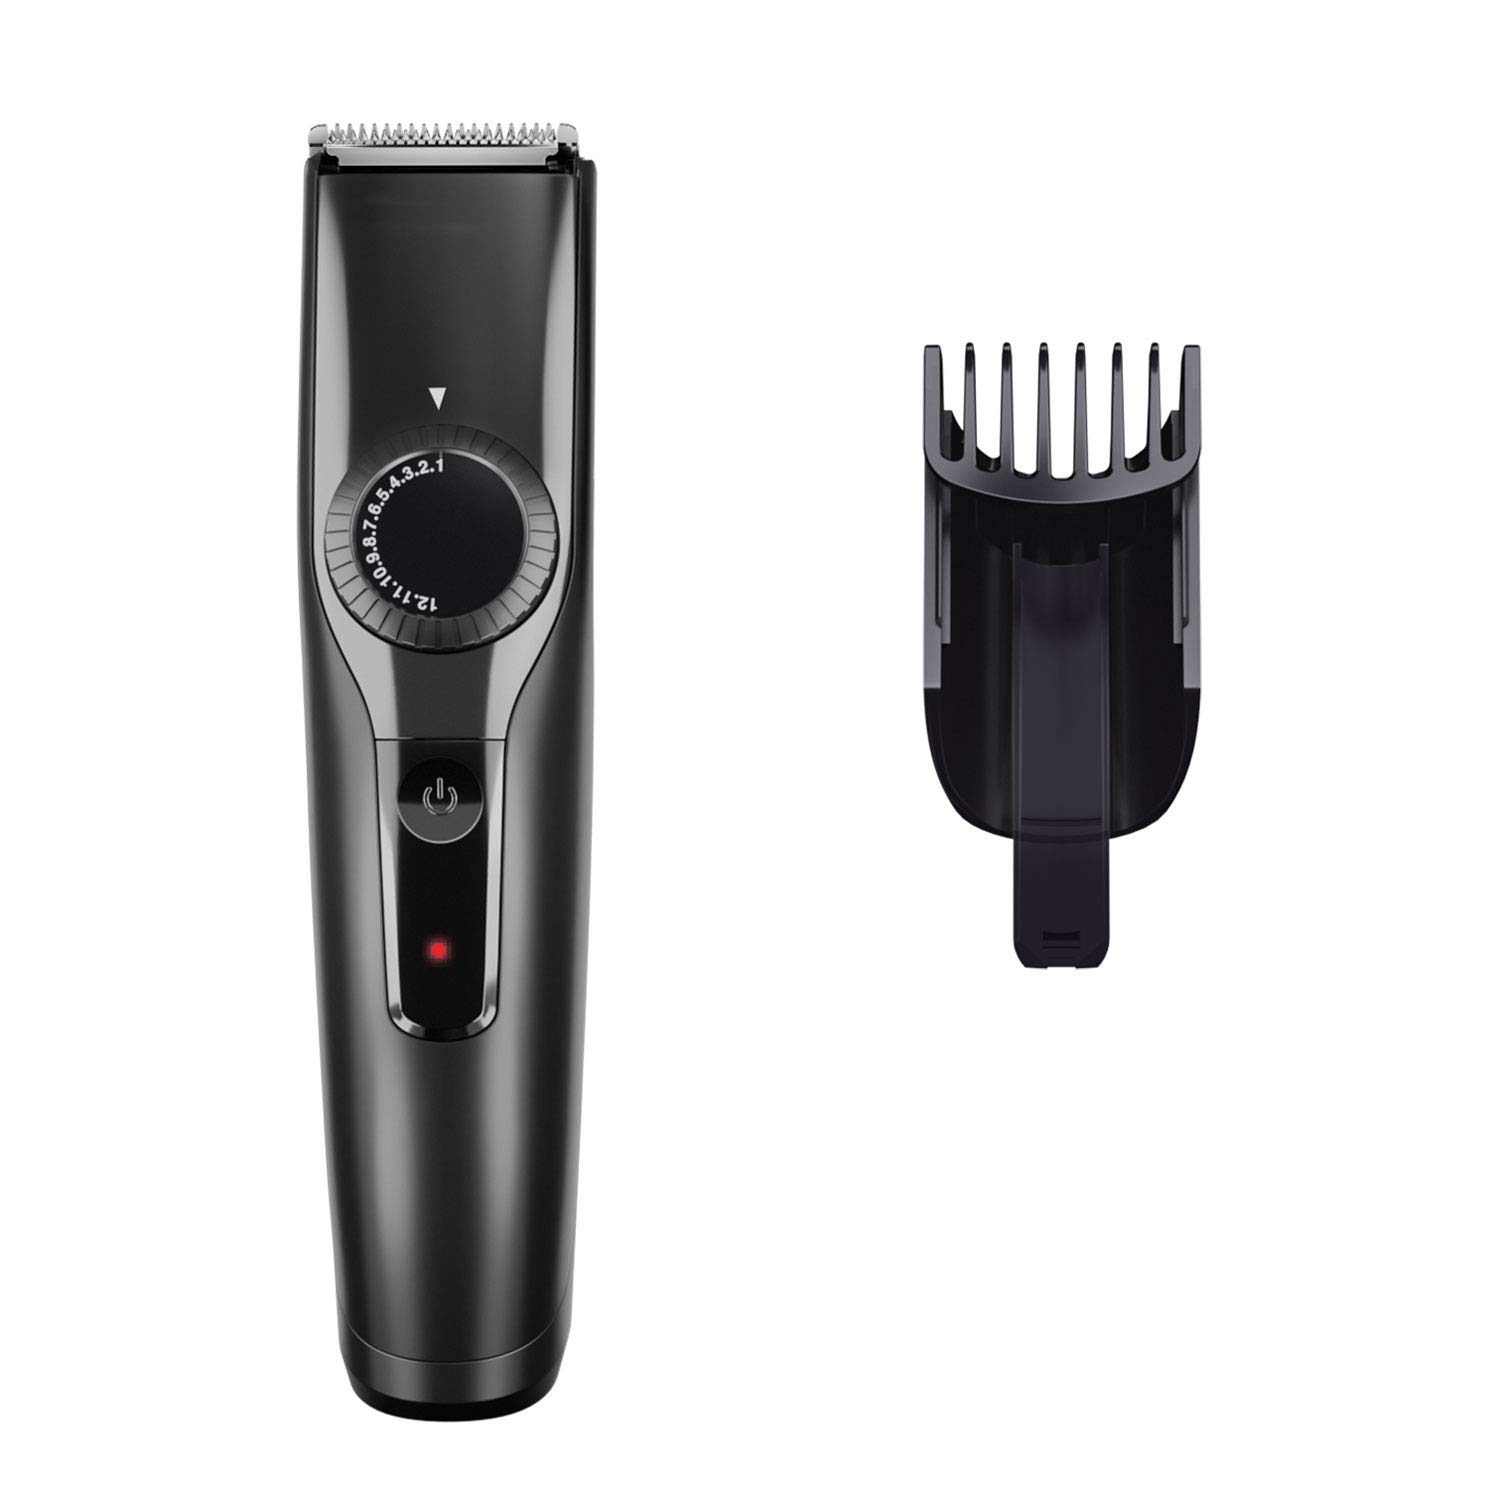 Roll over image to zoom in Vega T1 Beard Trimmer For Men With 40 mins Run-Time, USB Charging And 23 Length Settings